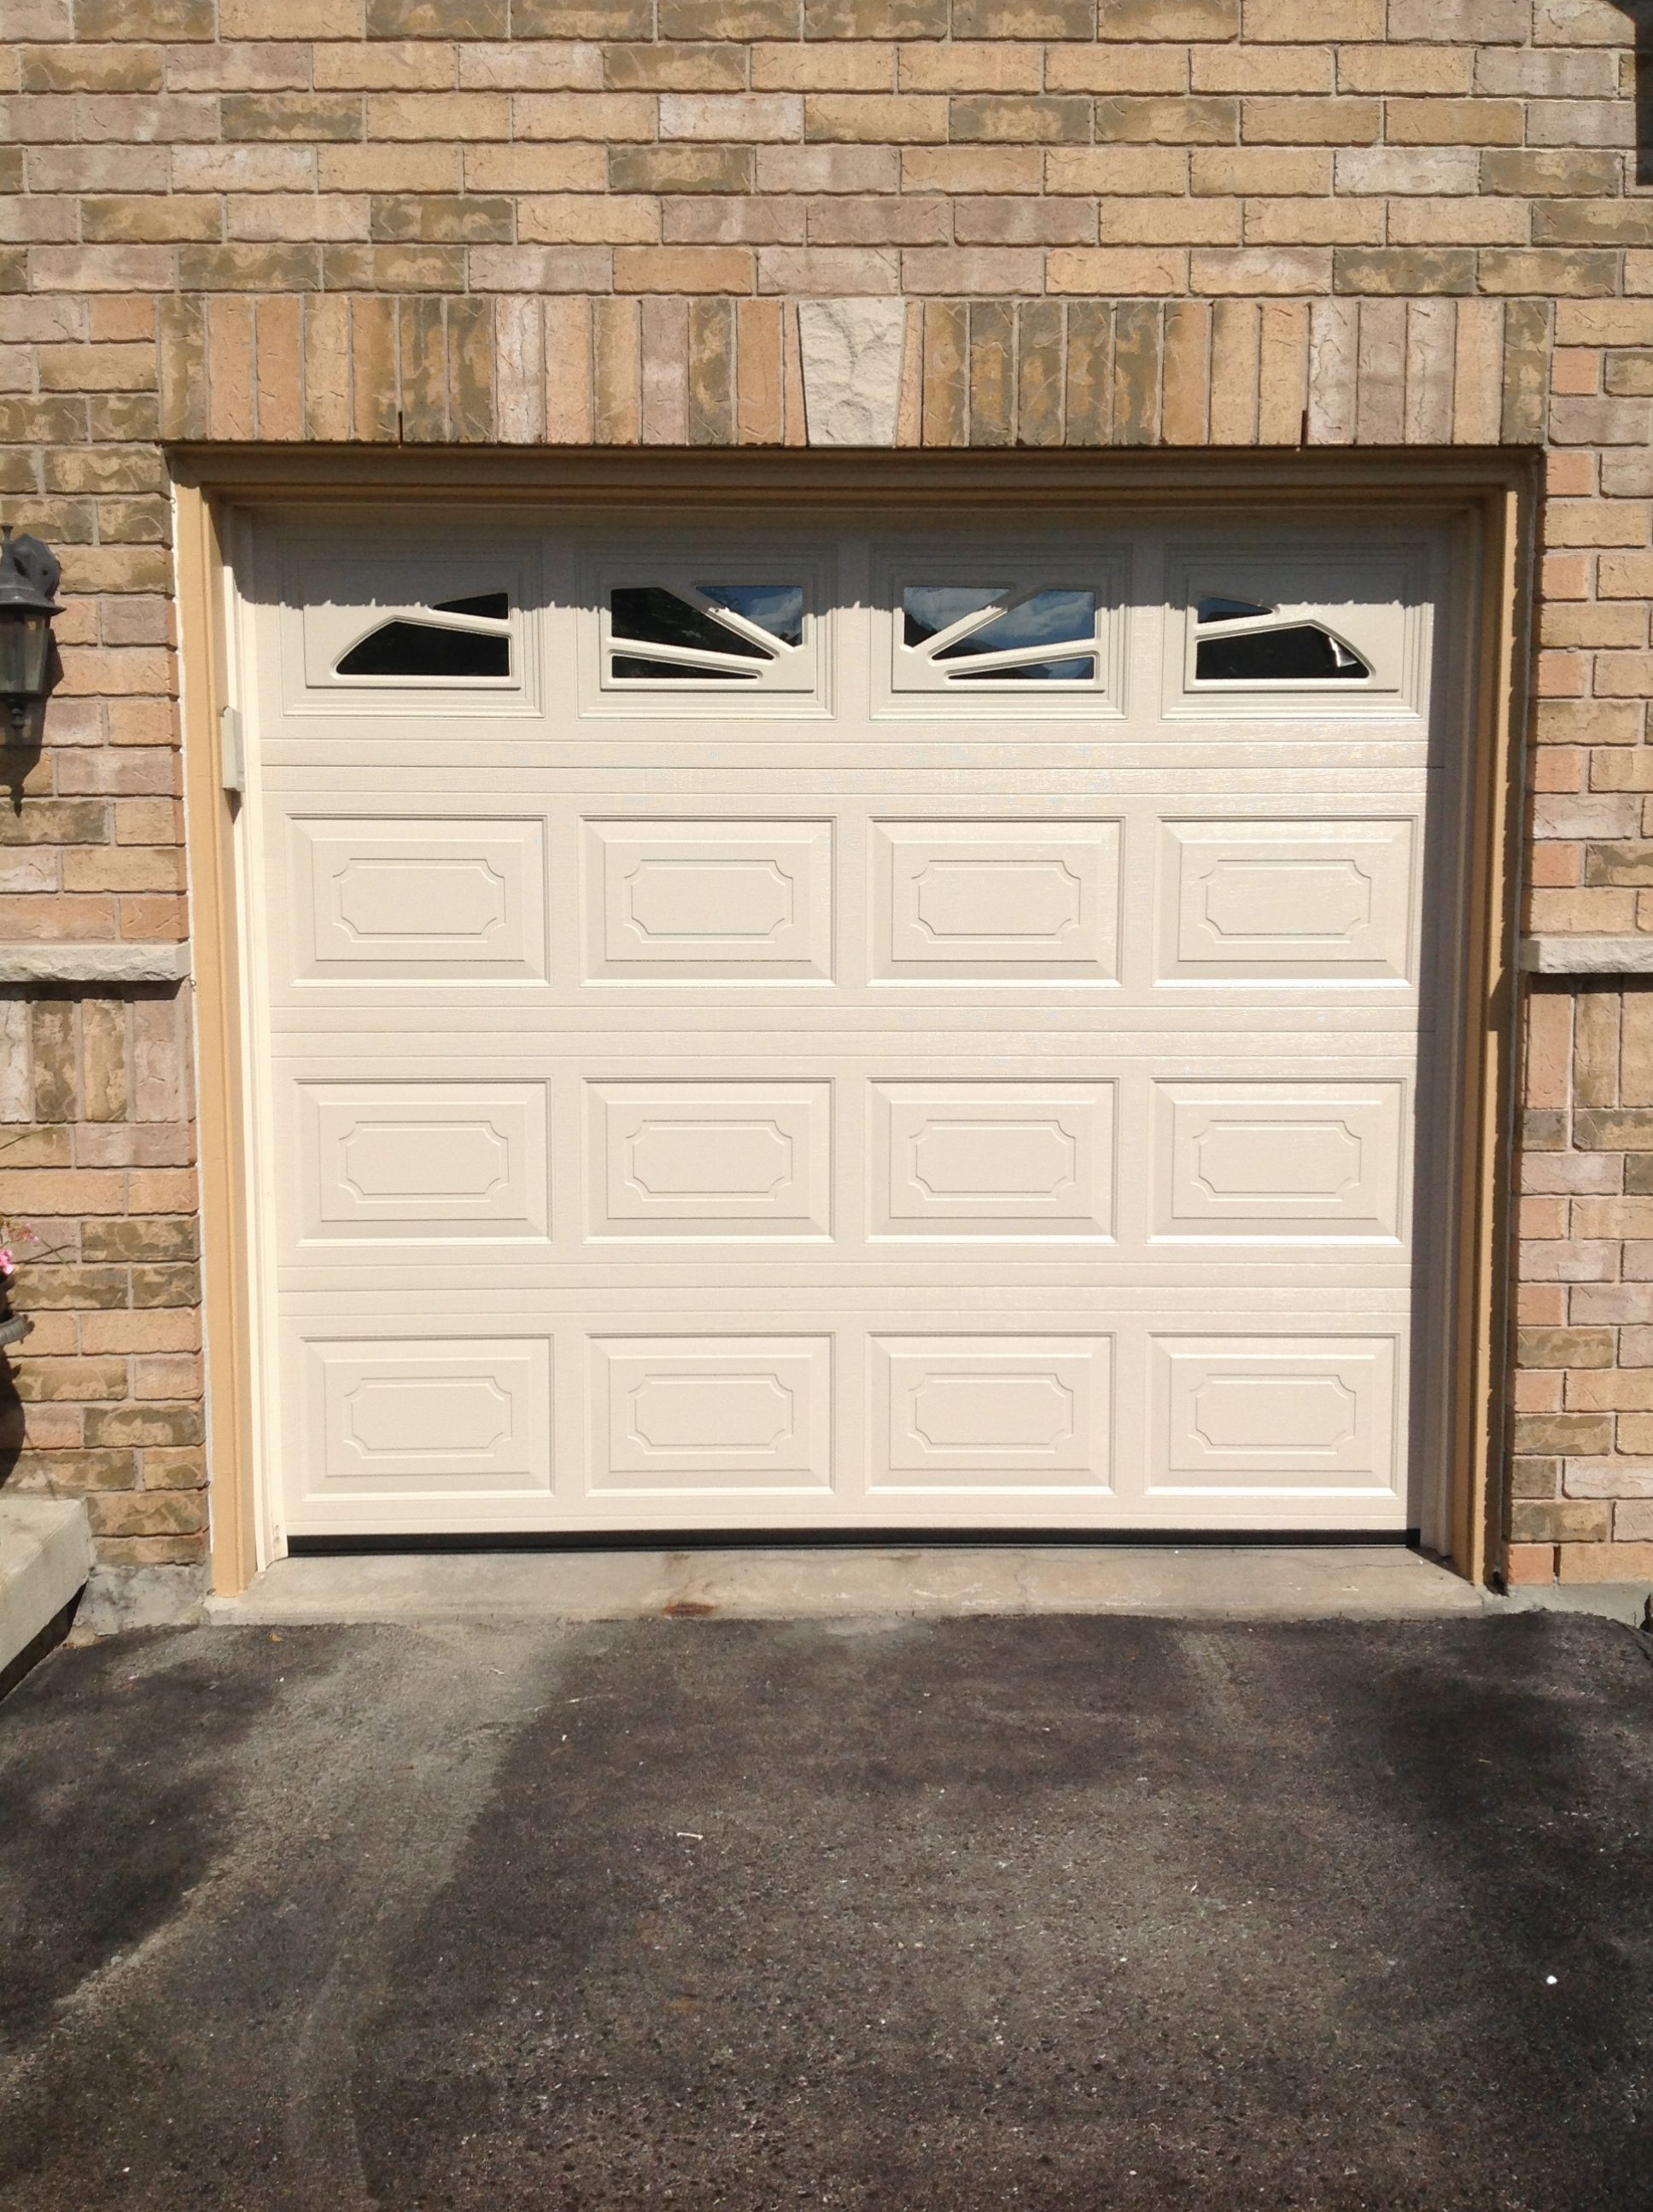 h chi doors c dakota carriage overhead door garage sales murfreesboro i